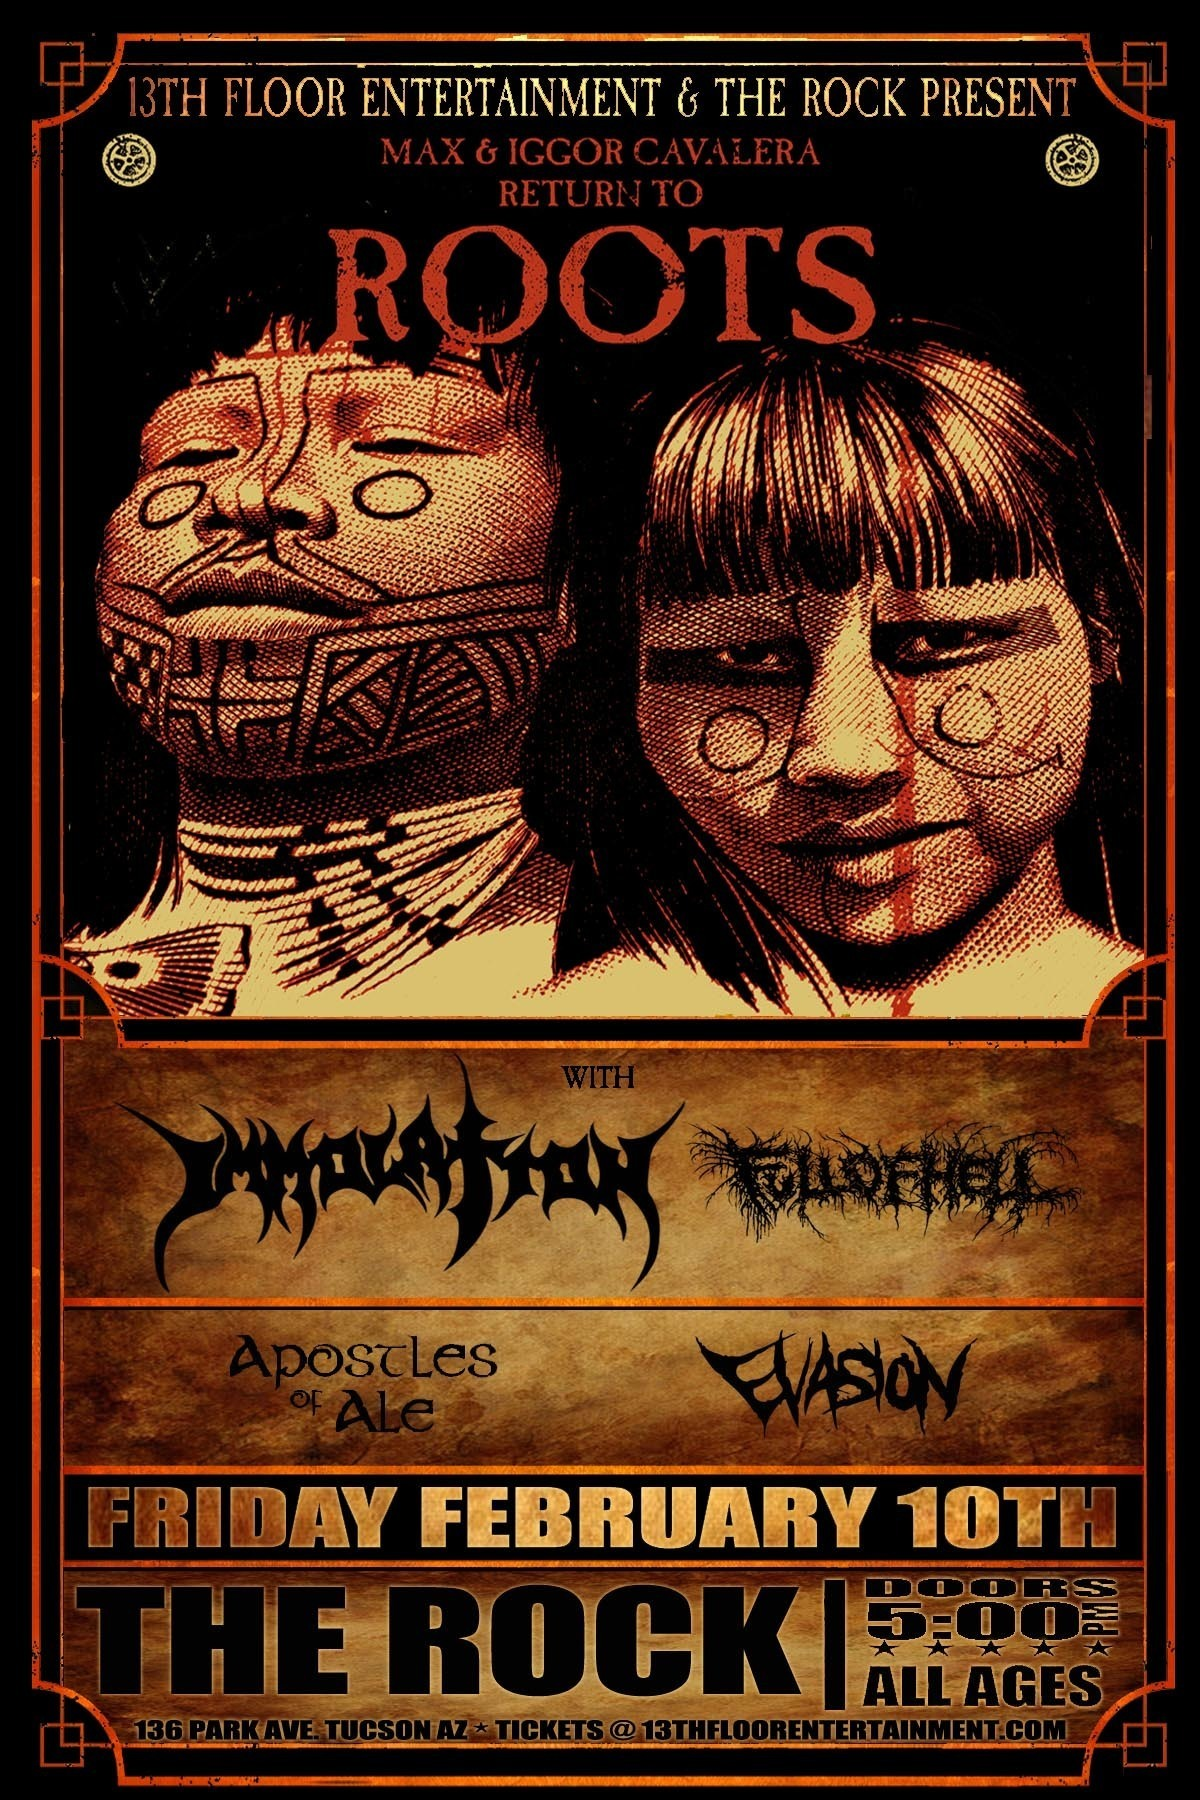 Presents Max & Iggor Cavalera Return